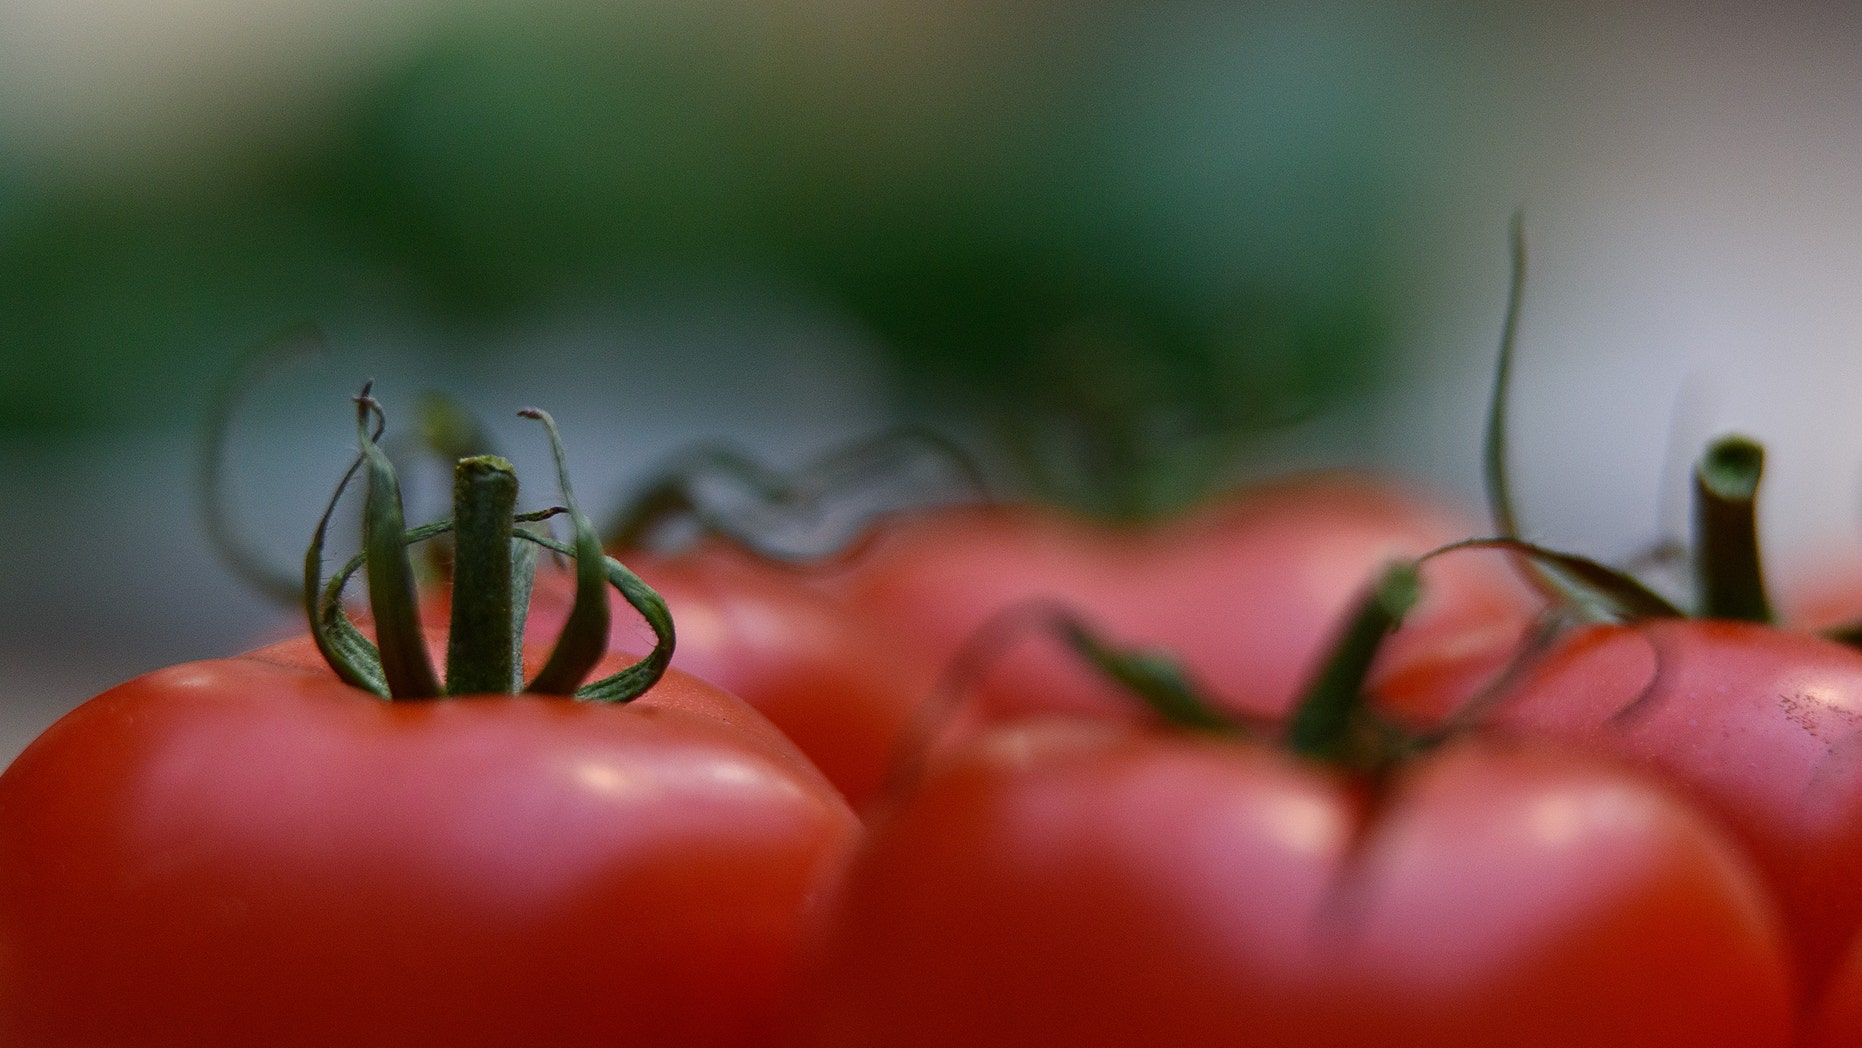 LONDON, ENGLAND - OCTOBER 06:  A tomato on display during the RHS (Royal Horticultural Society) London Harvest Festival Show at RHS Lindley Halls on October 6, 2015 in London, England. The traditional harvest themed show runs October 6-7 and showcases a wide range of late summer grown fruit and vegetables.  (Photo by Ben Pruchnie/Getty Images)